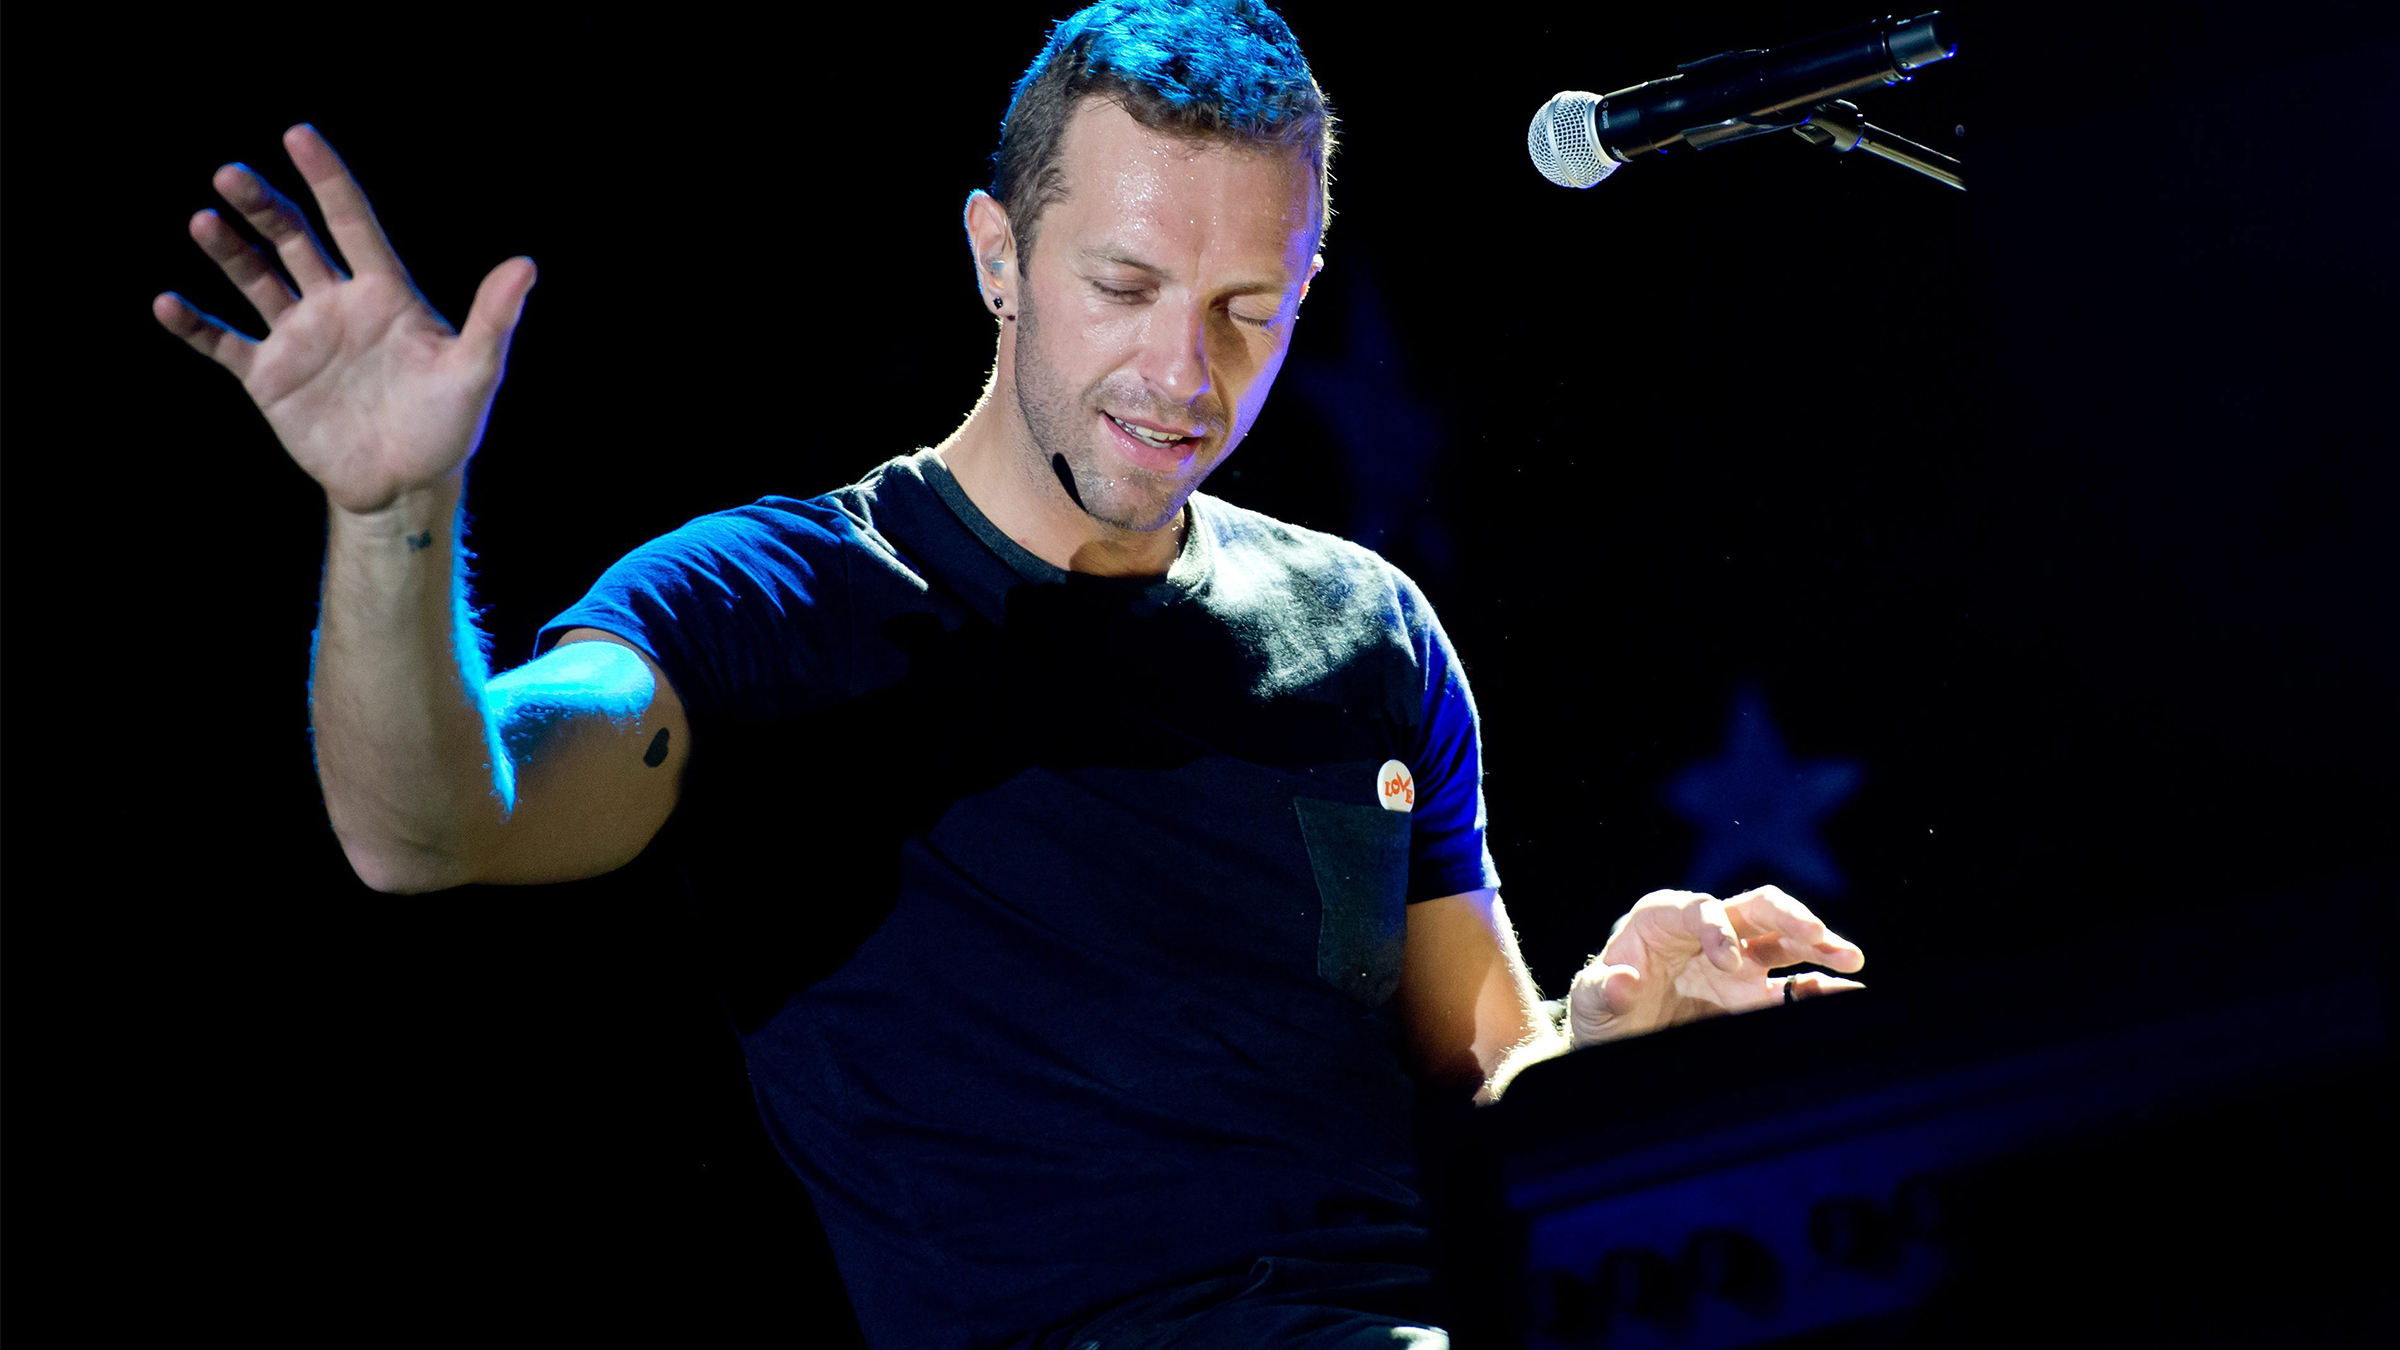 Chris martin tease